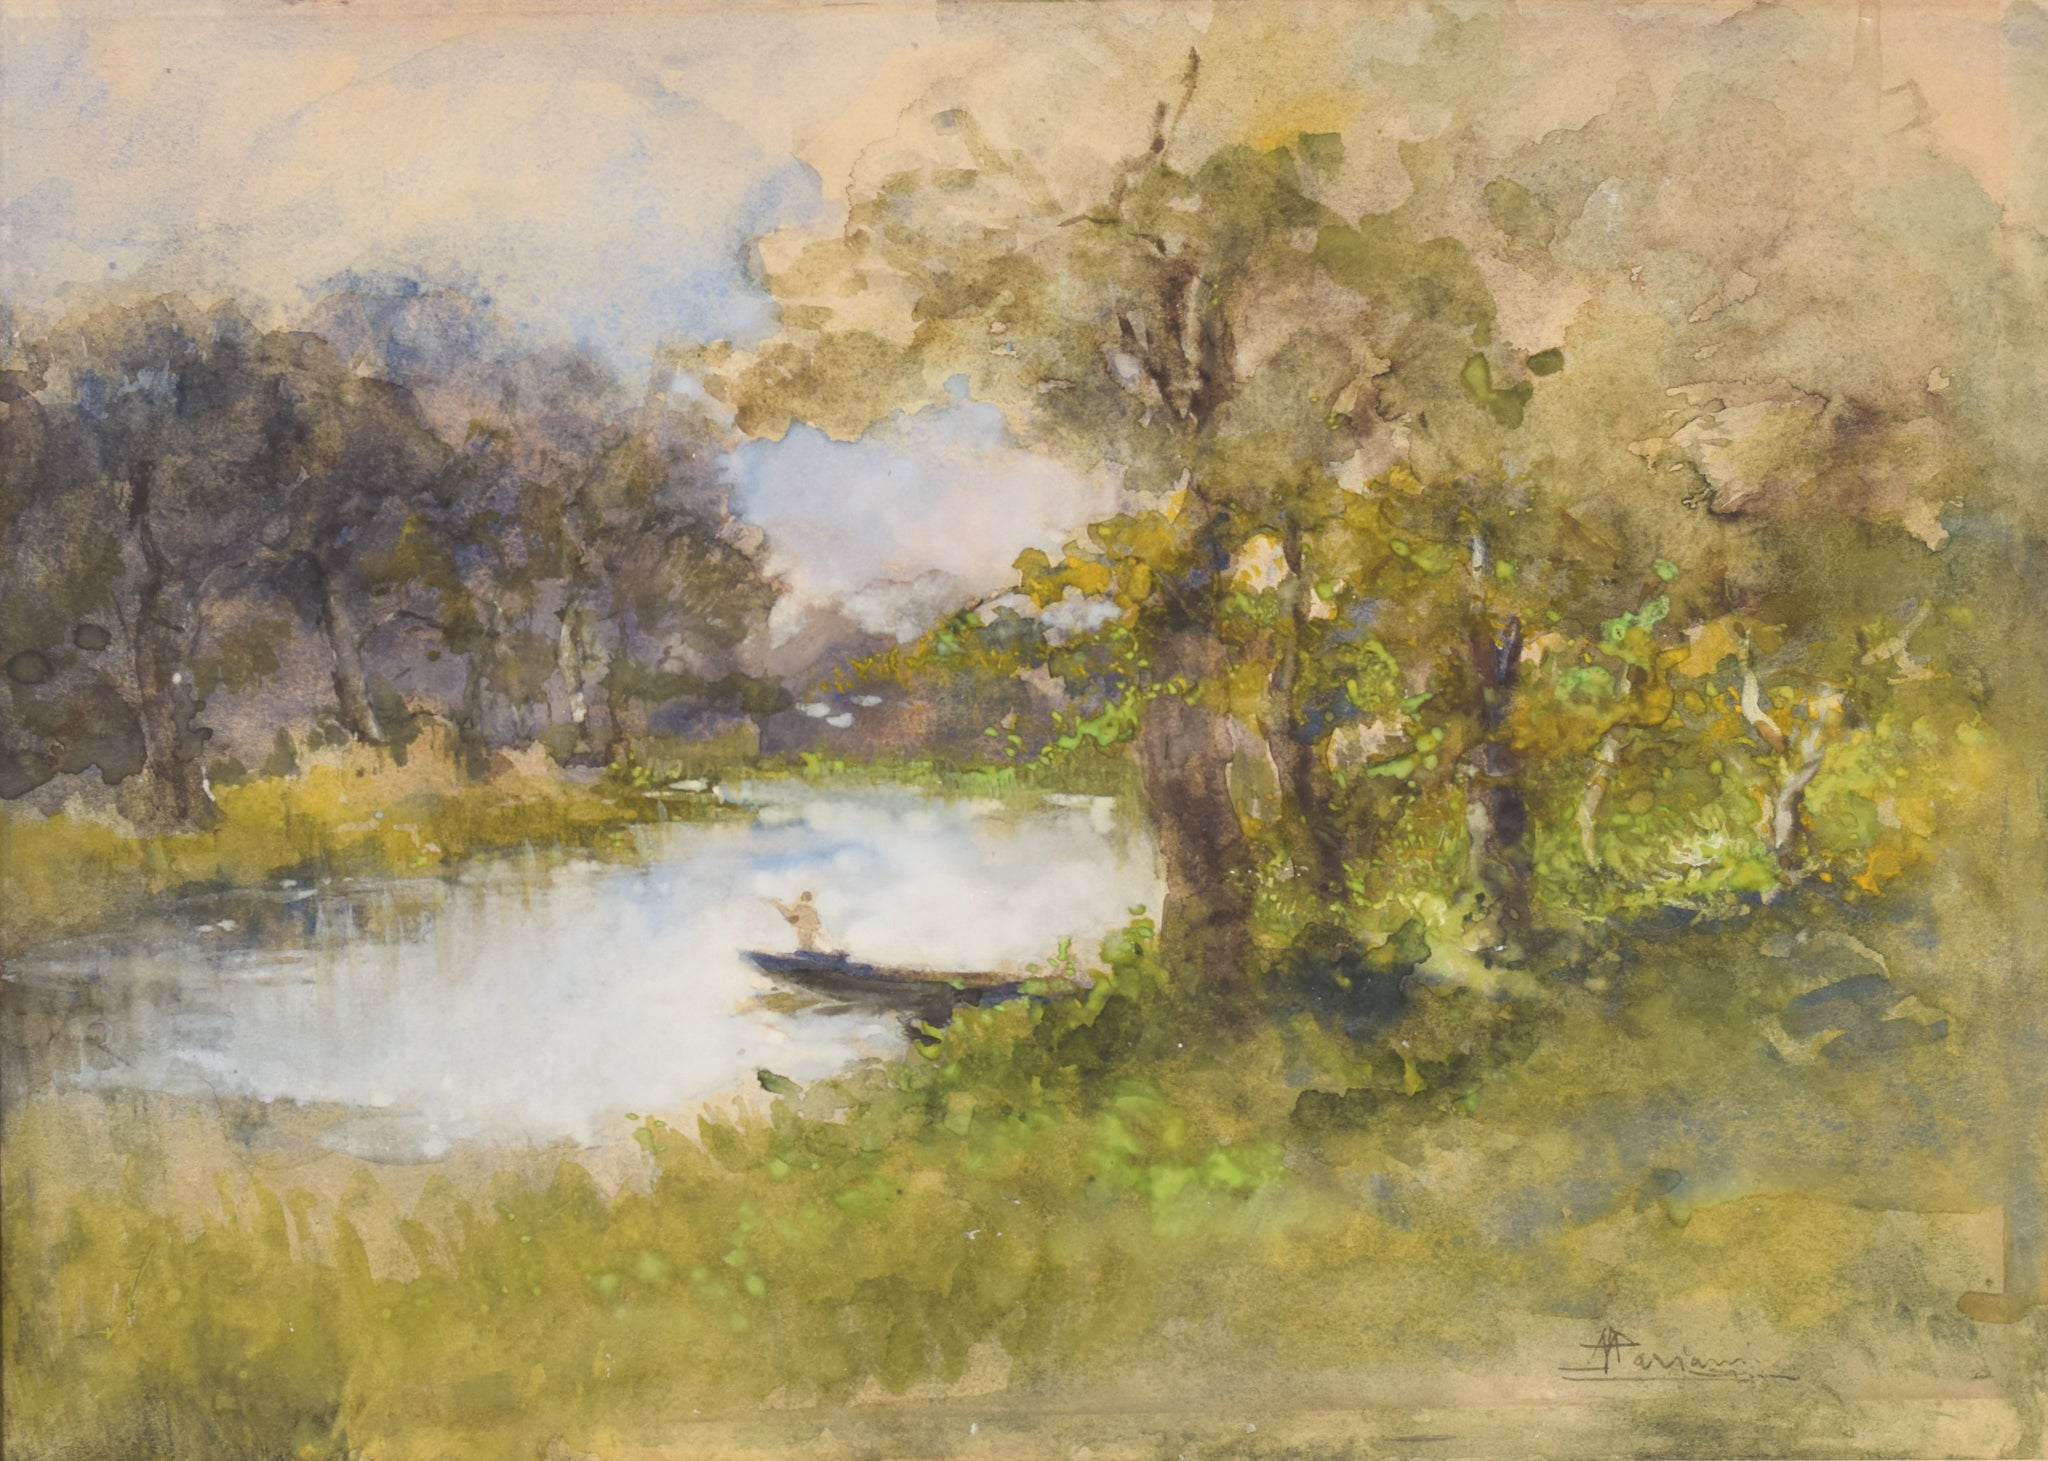 'The Boat on the River' Watercolour Landscape by Pompeo Mariani